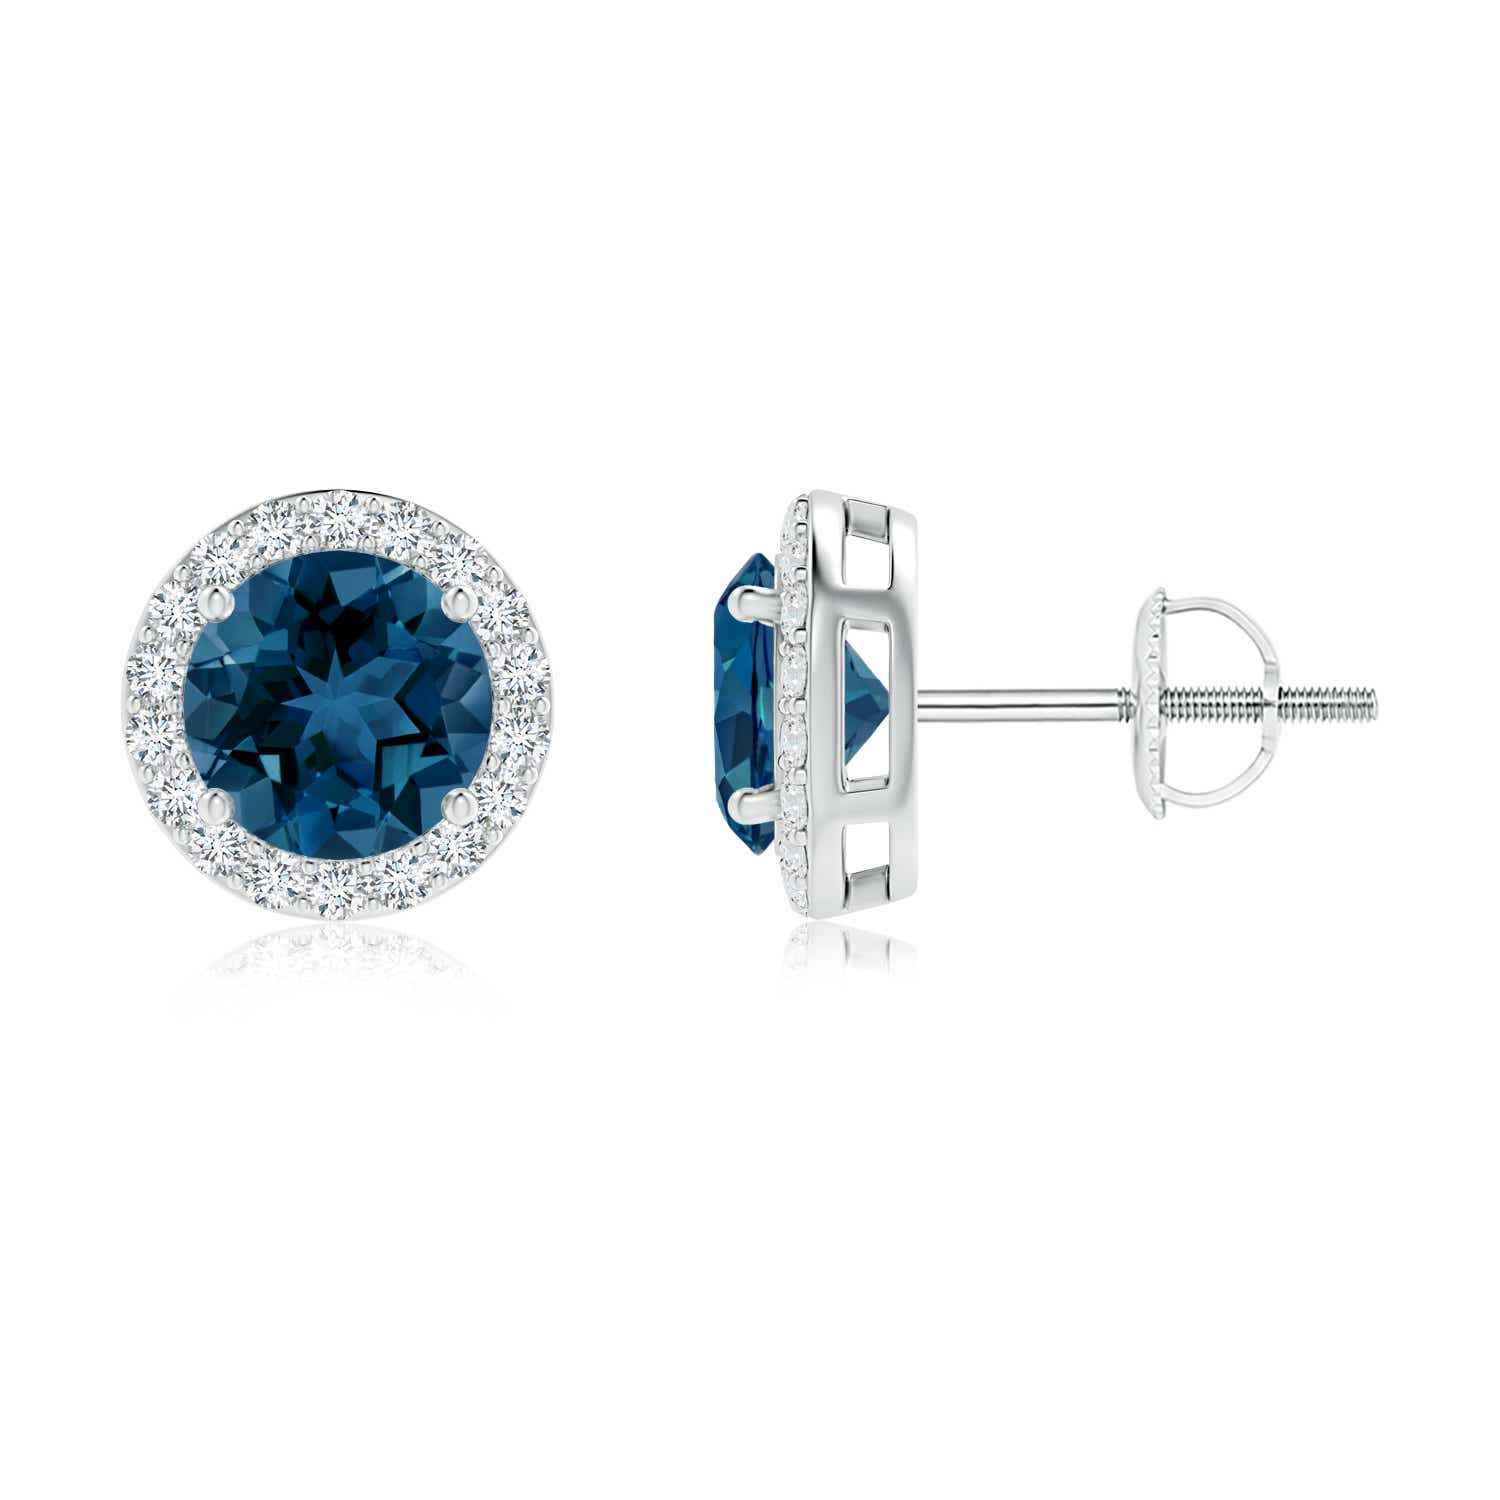 Angara Square Blue Sapphire and Diamond Halo Stud Earrings u5Wmm